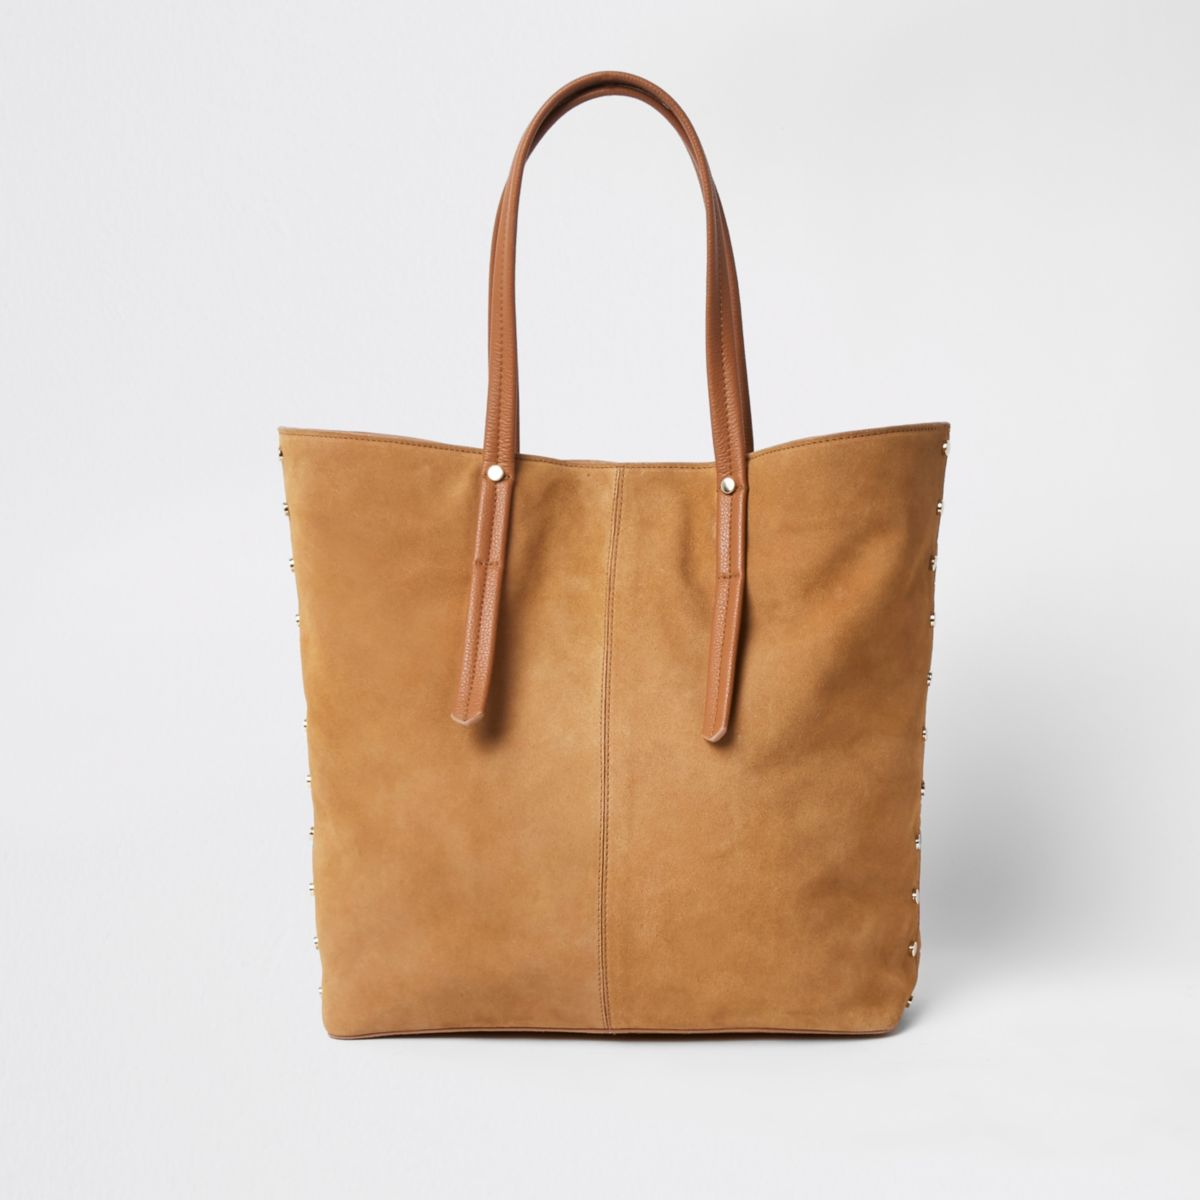 Beige suede leather handle shopper